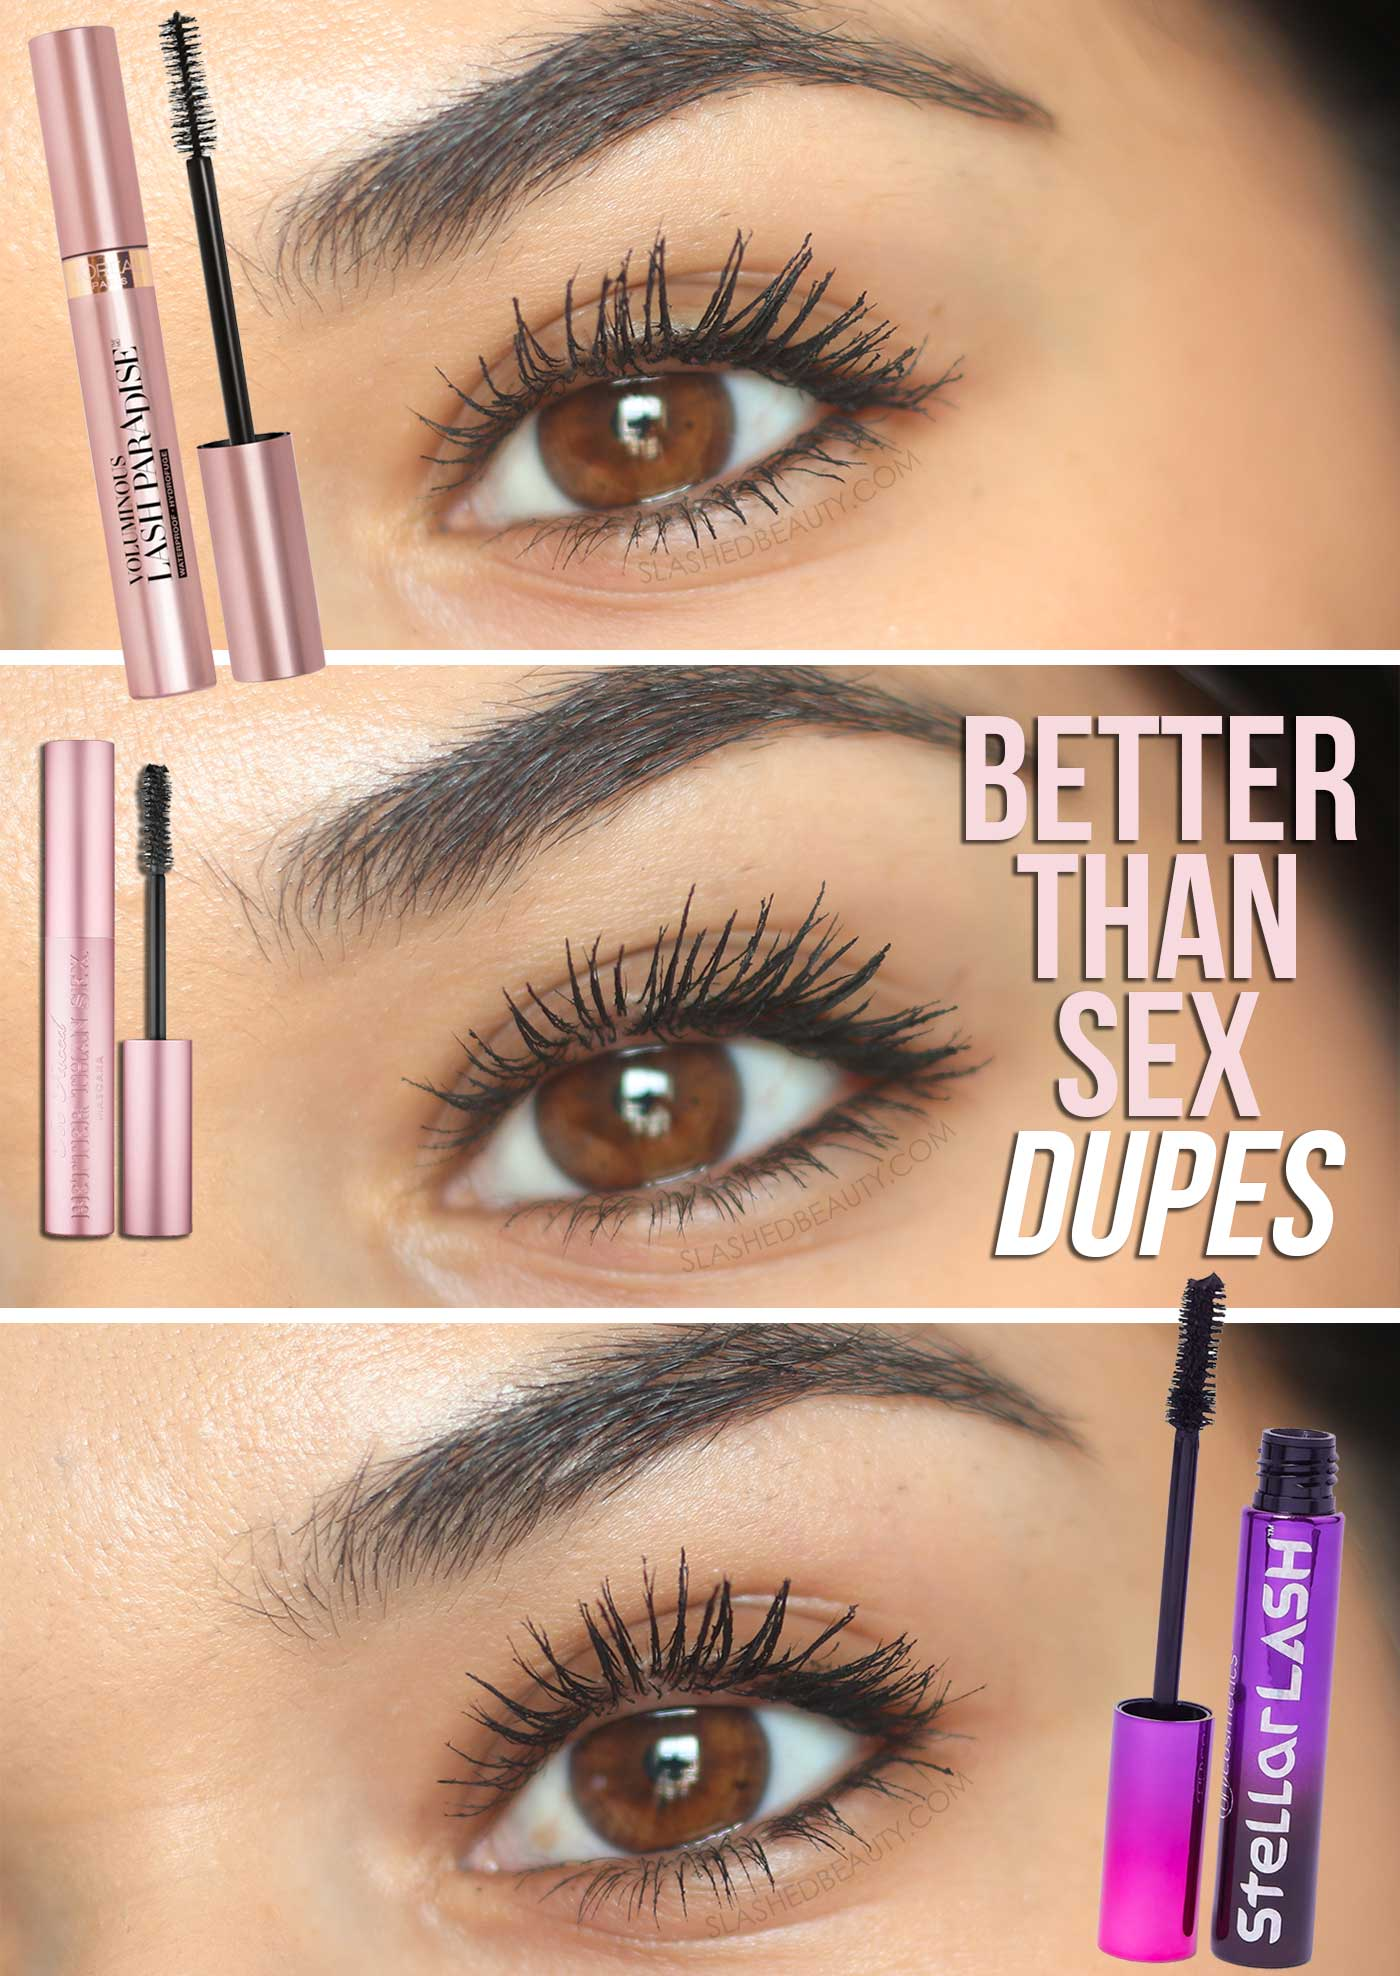 Two Drugstore Dupes for Too Faced Better Than Sex Mascara | Better Than Sex Mascara Dupes | Slashed Beauty